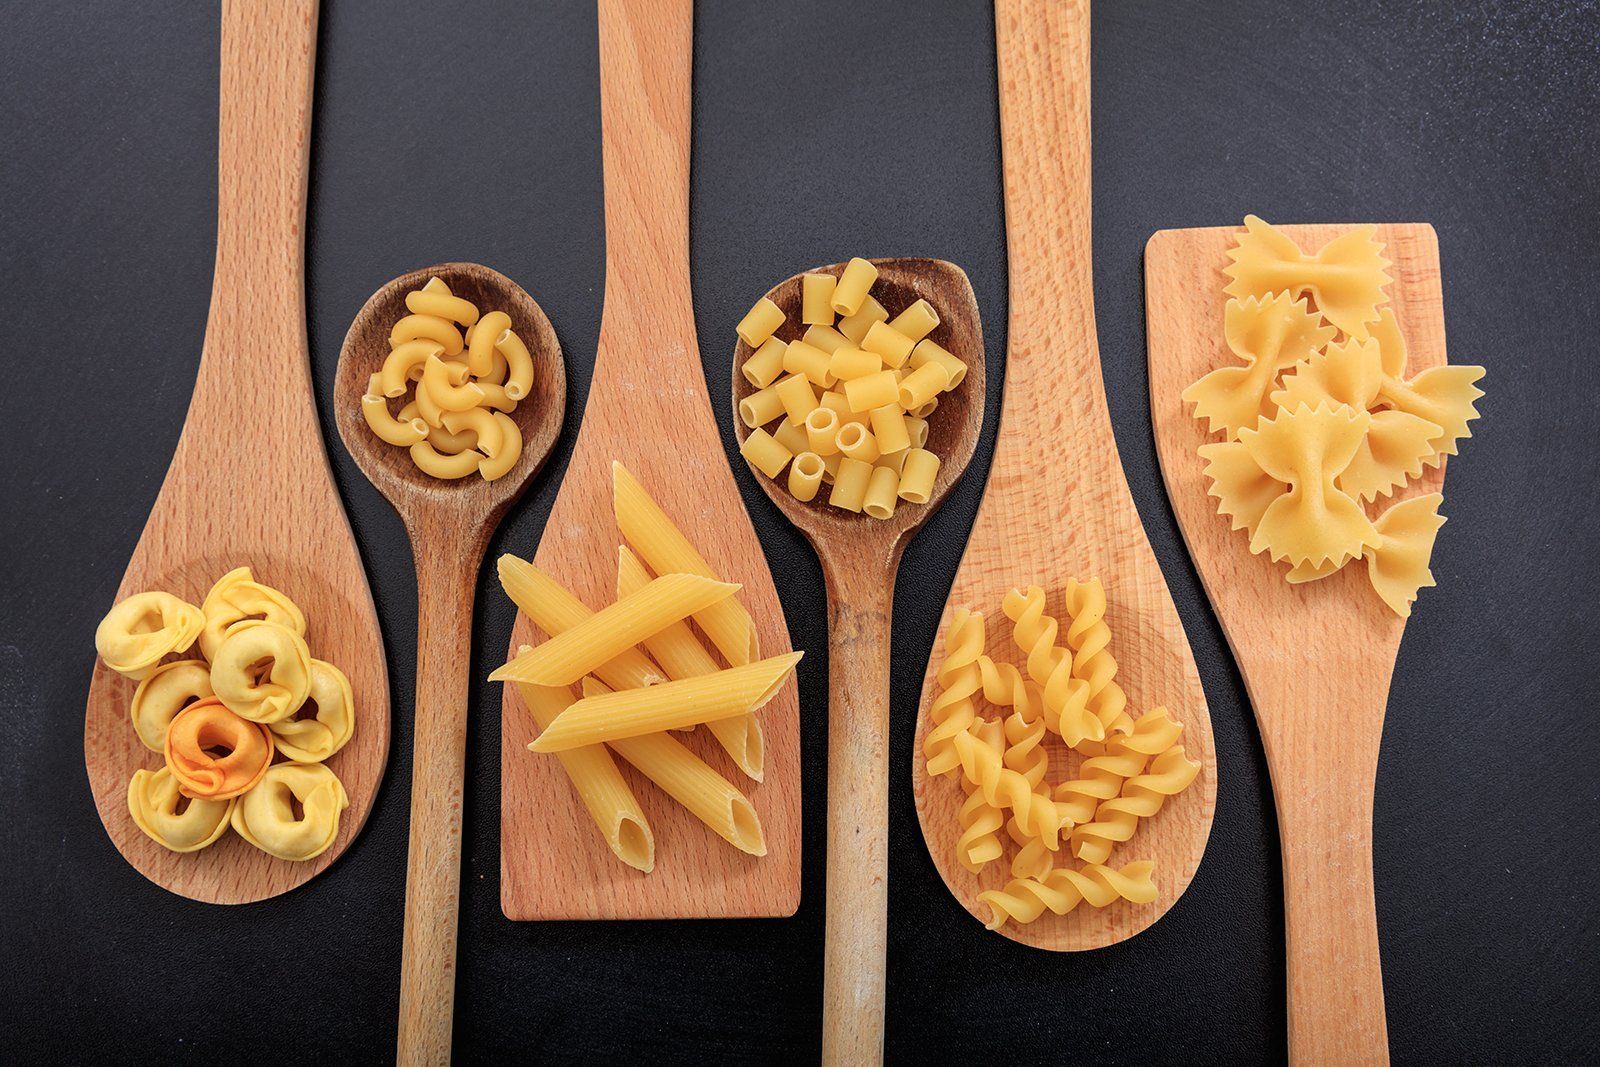 Different types of pasta shapes sitting on wooden spatulas